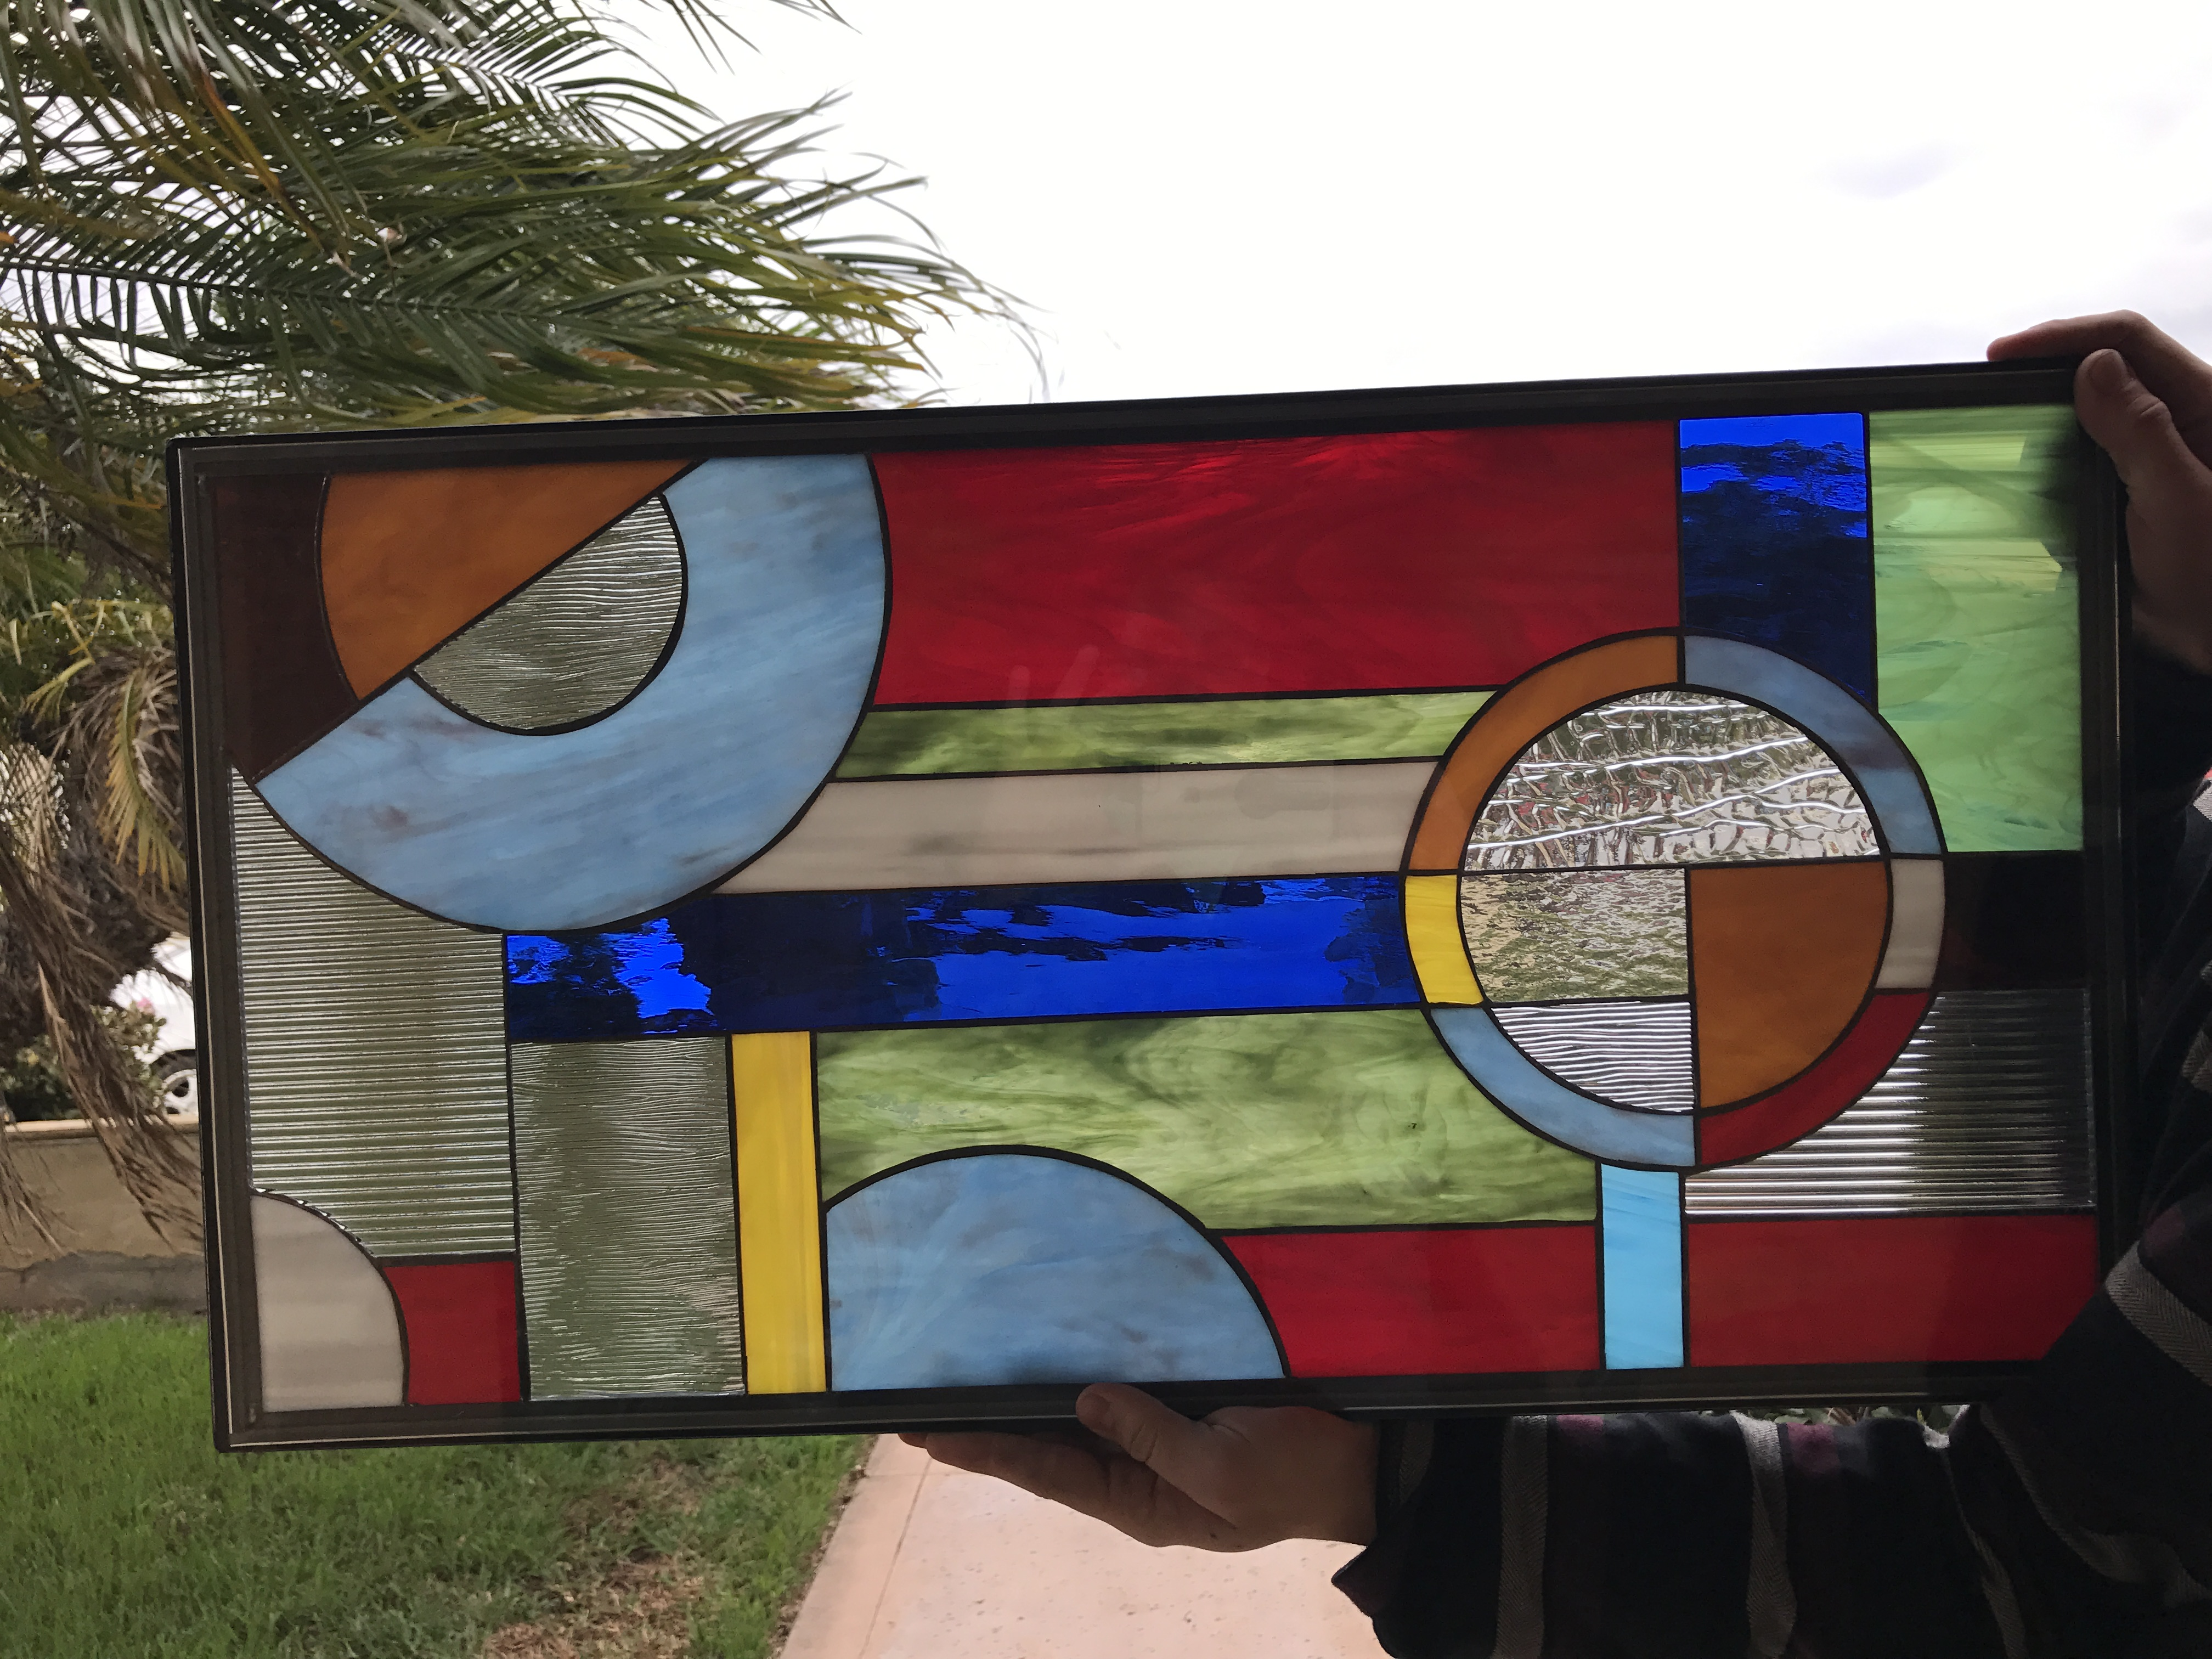 The Merlin Colorful Geometric Stained Glass Window Panel Or